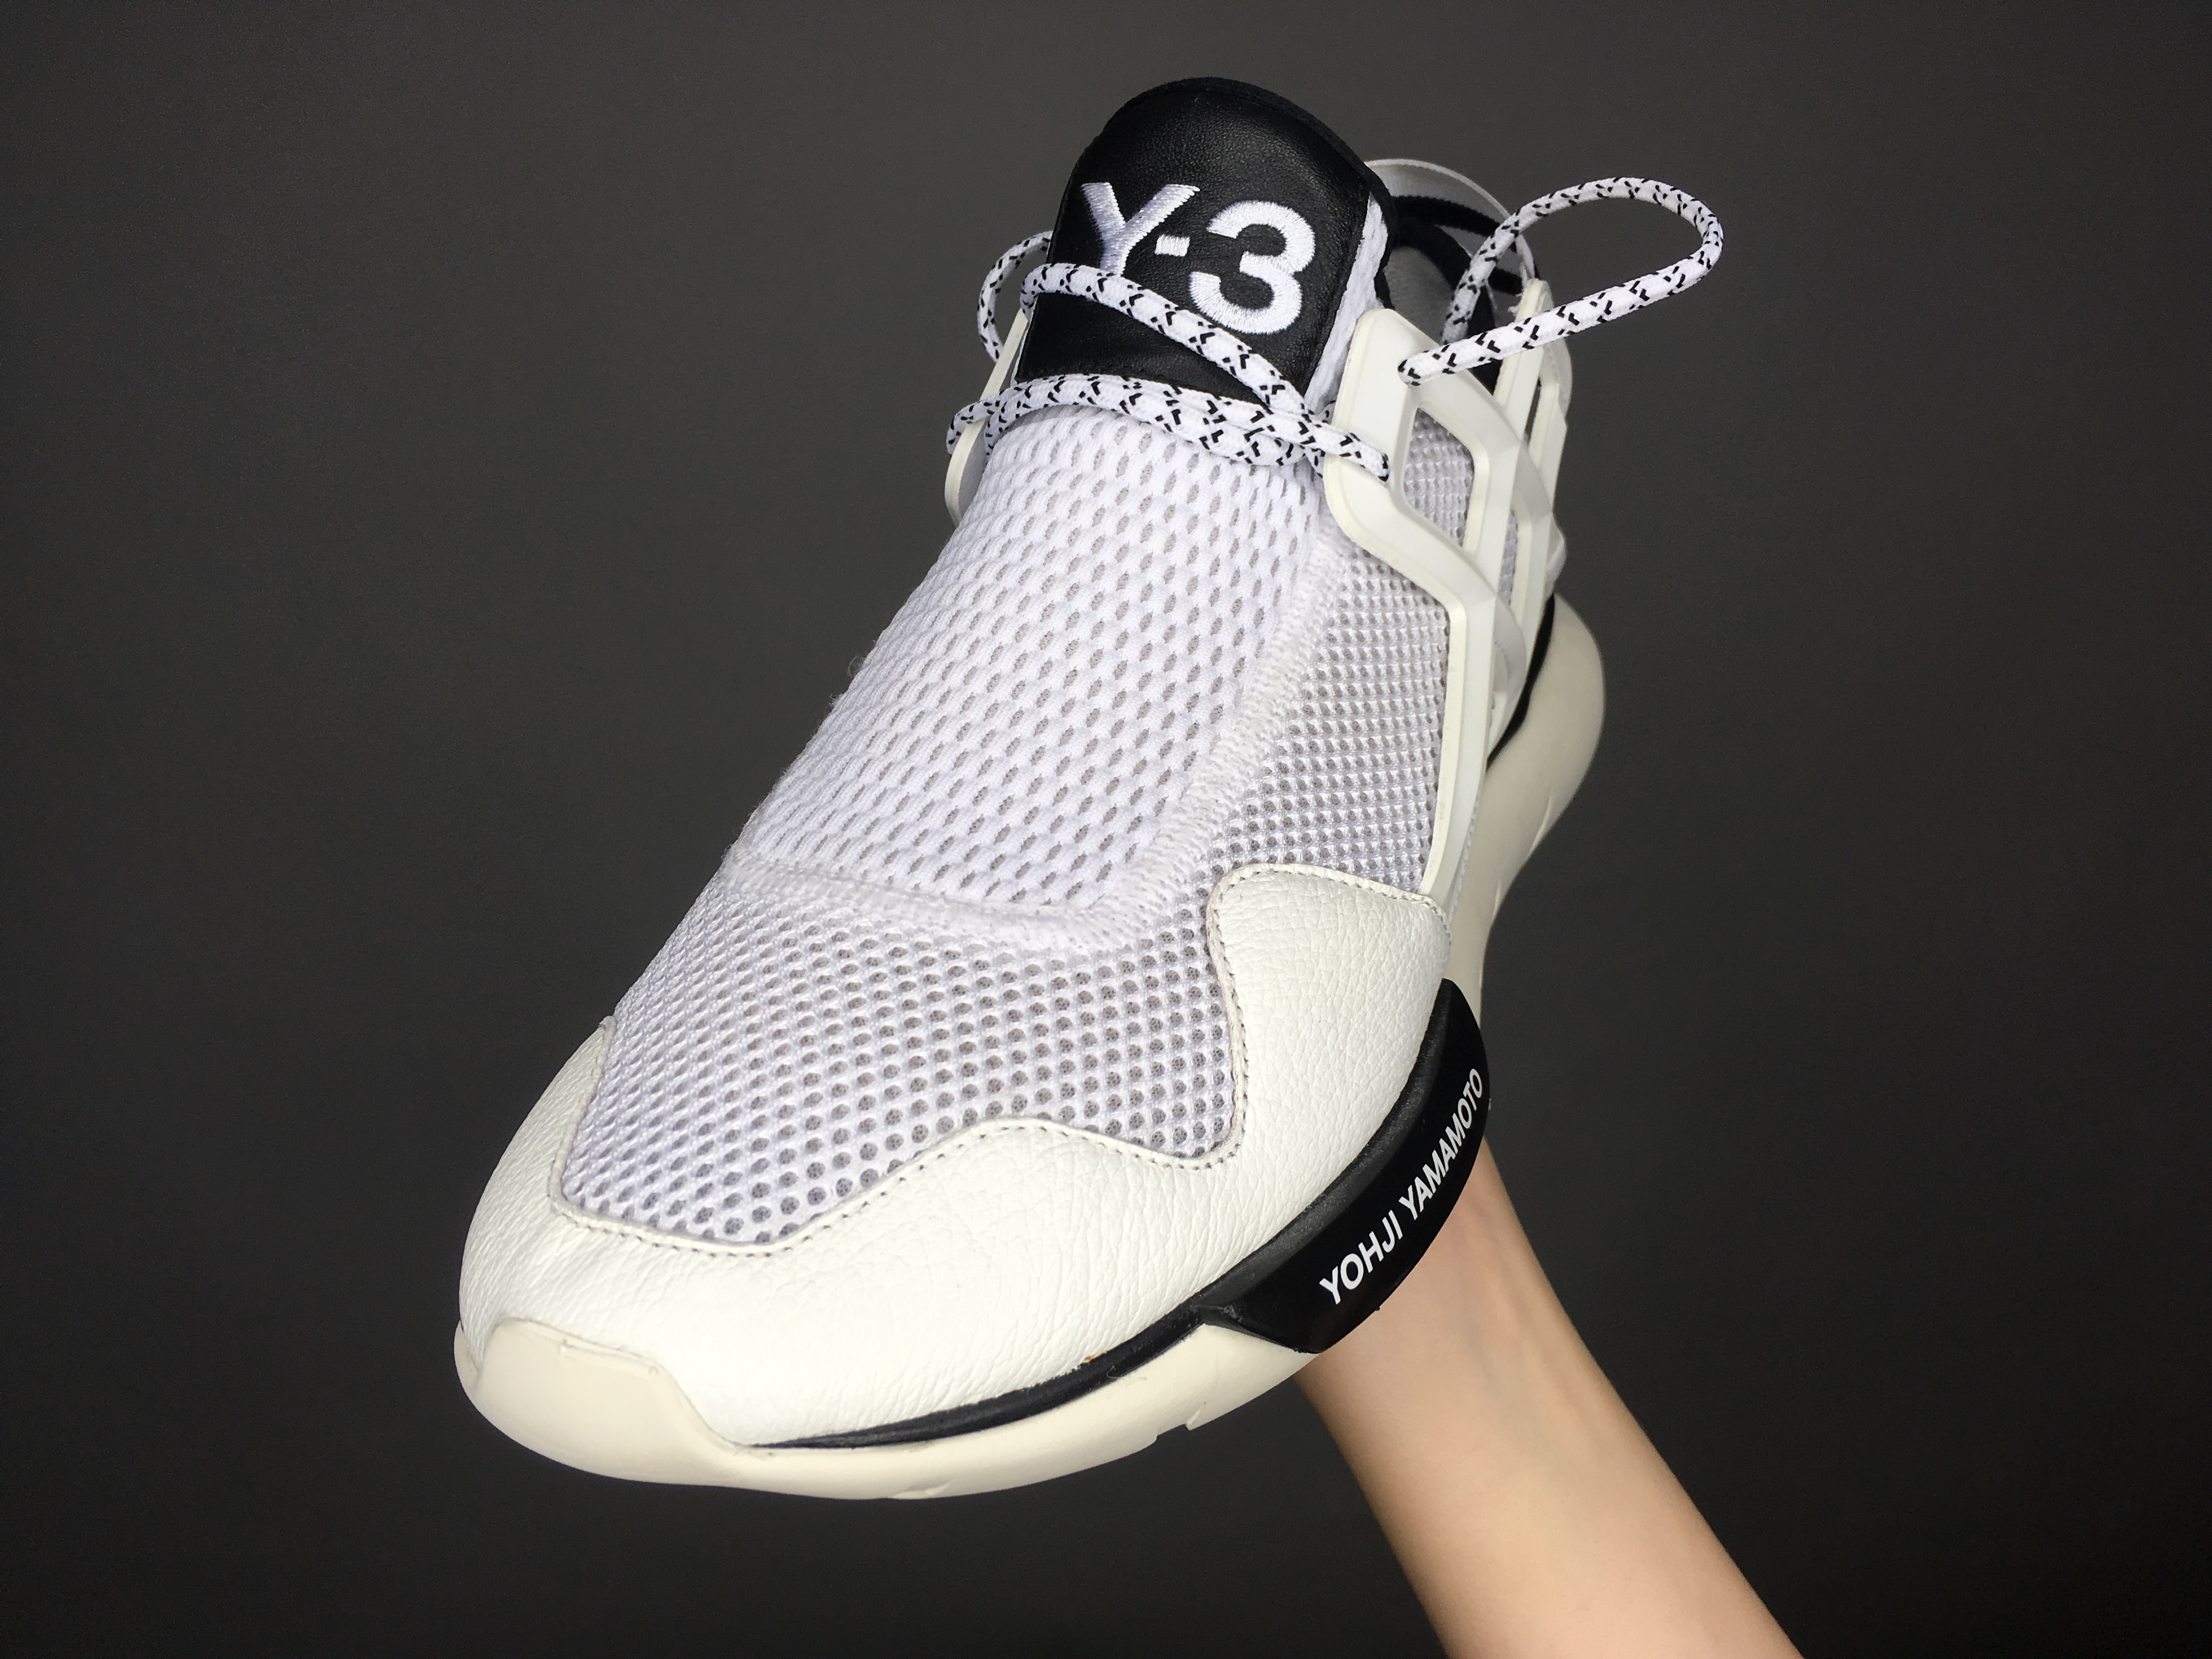 02e0a2a39 Adidas Y-3 Qasa Racer Low White Size 8 - Low-Top Sneakers for Sale ...